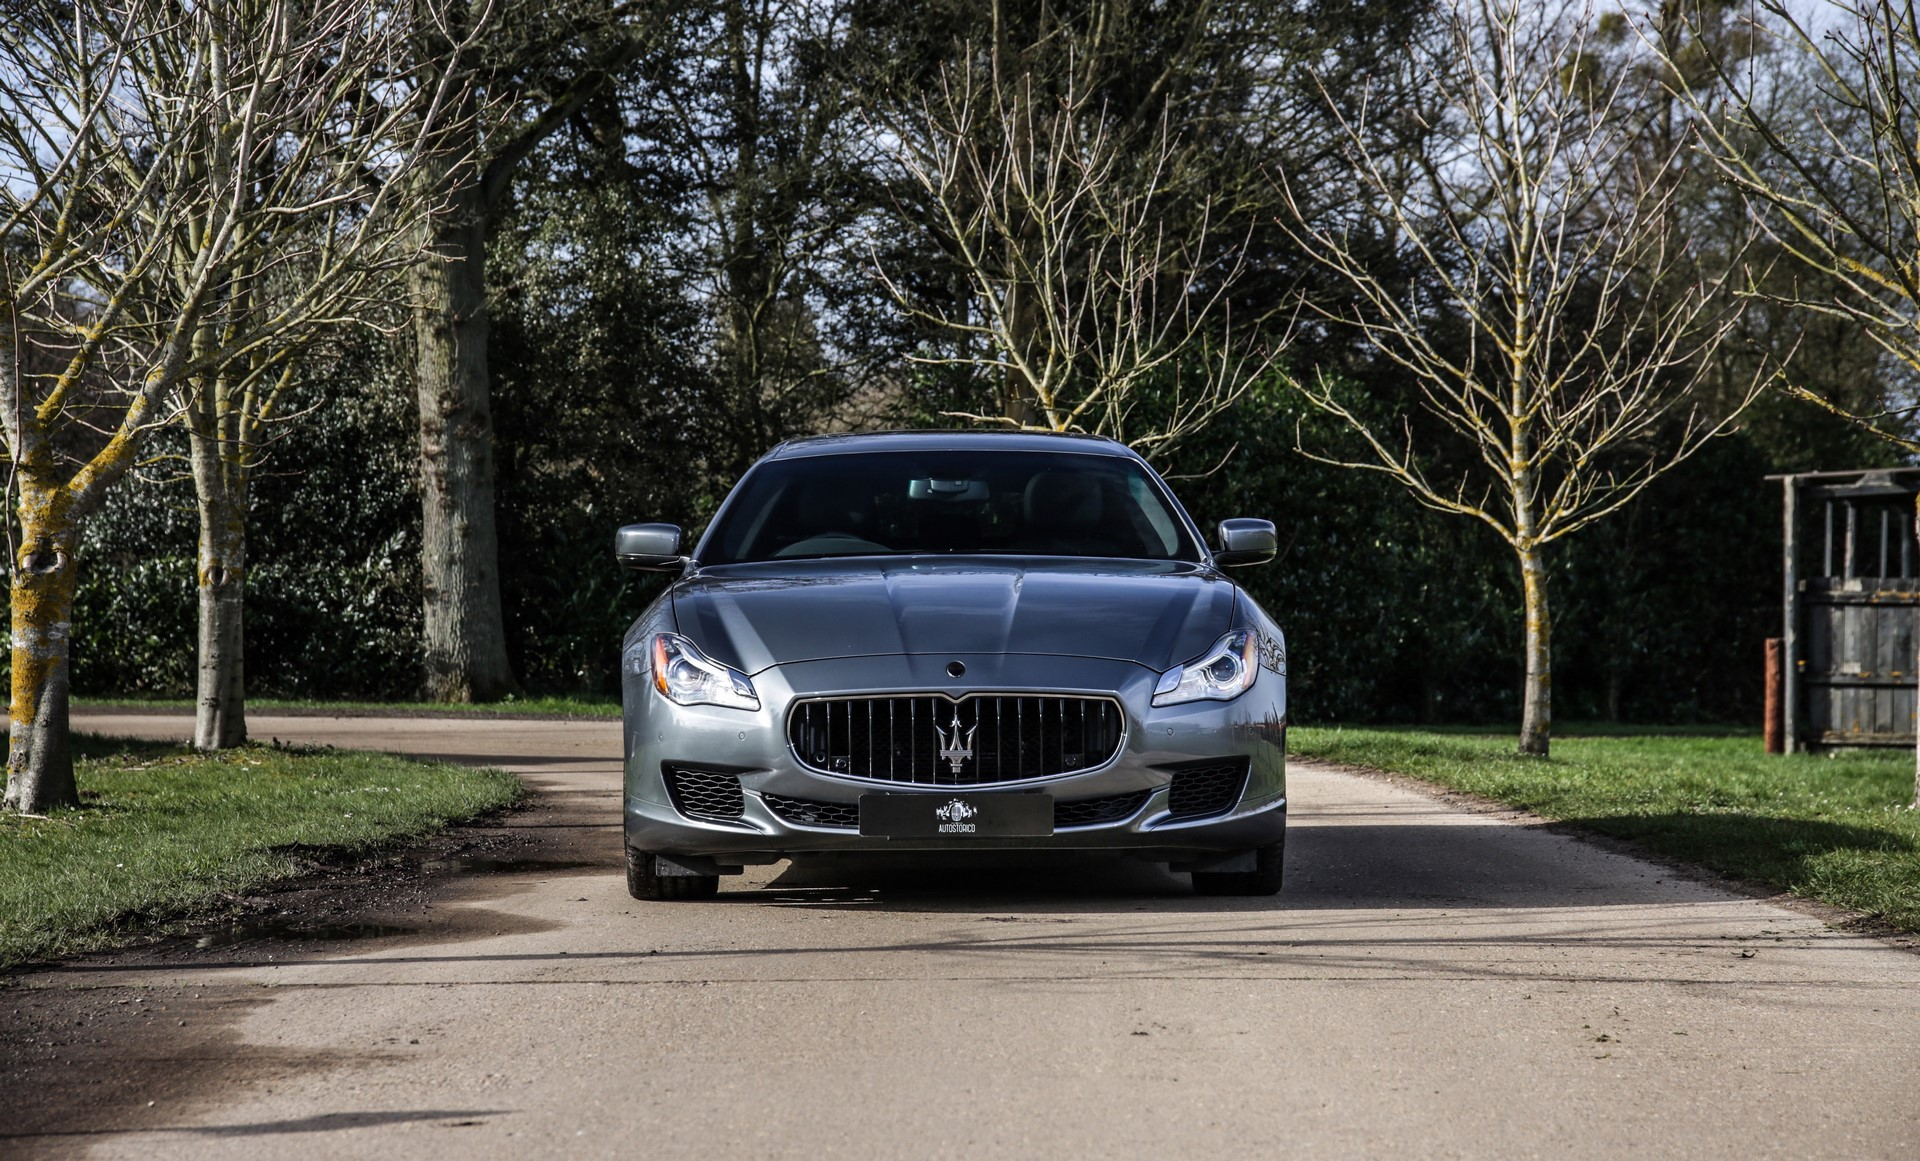 Maserati Quattroporte Shooting Brake (3)